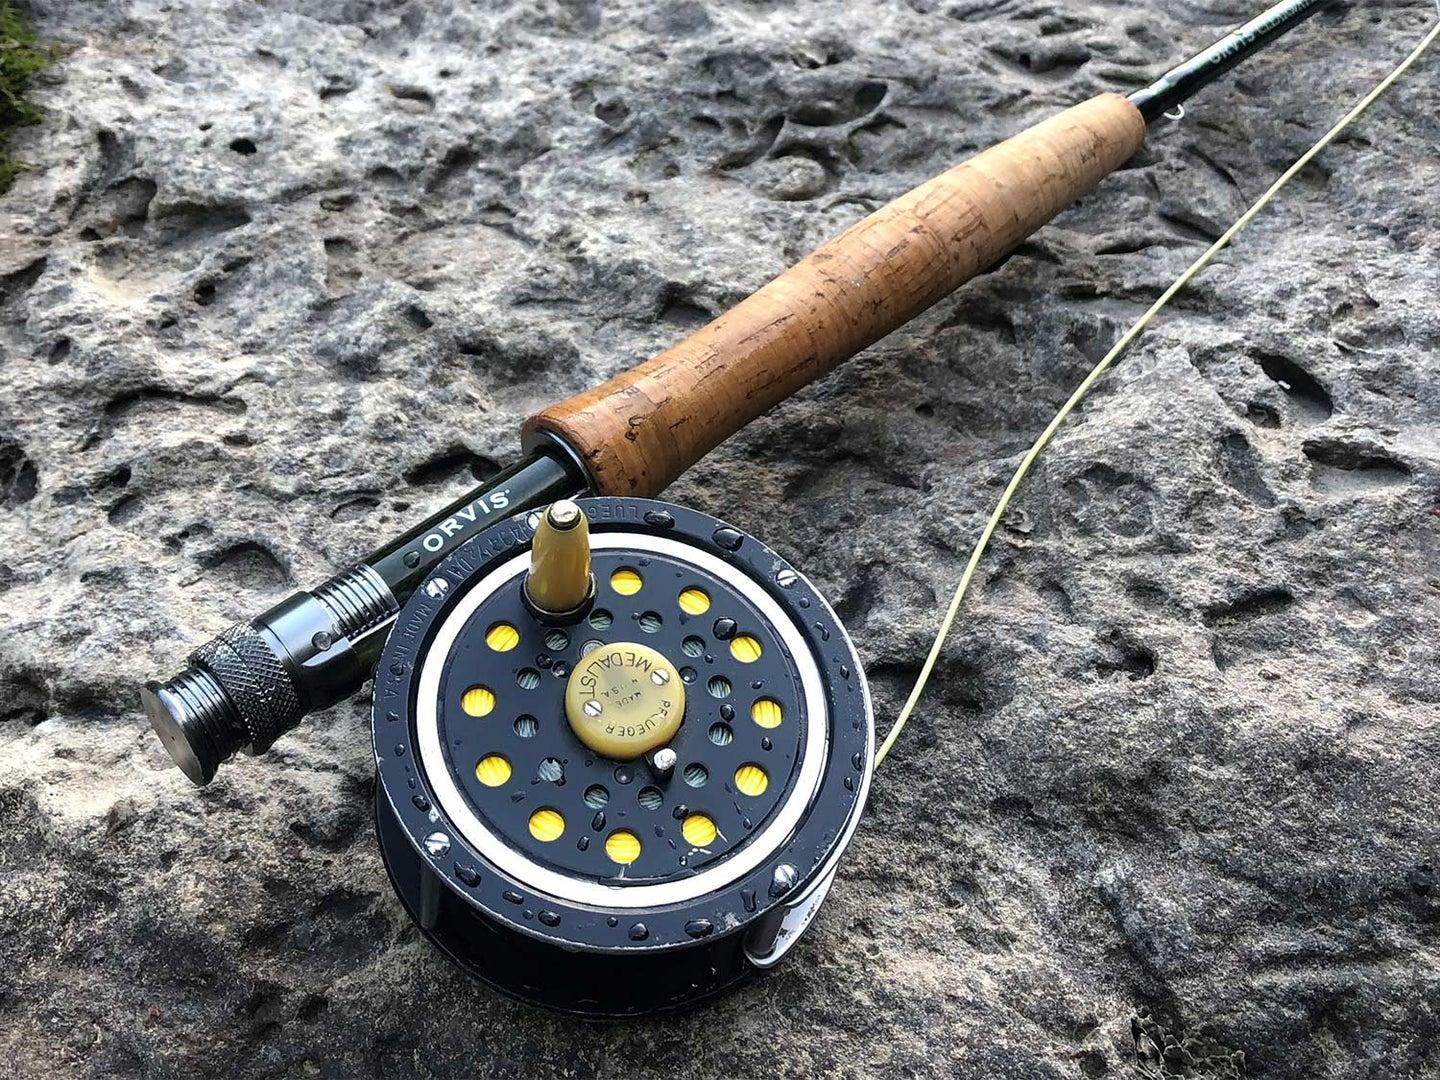 An Orvis reel and Pflueger fly reel on a stone by the water.